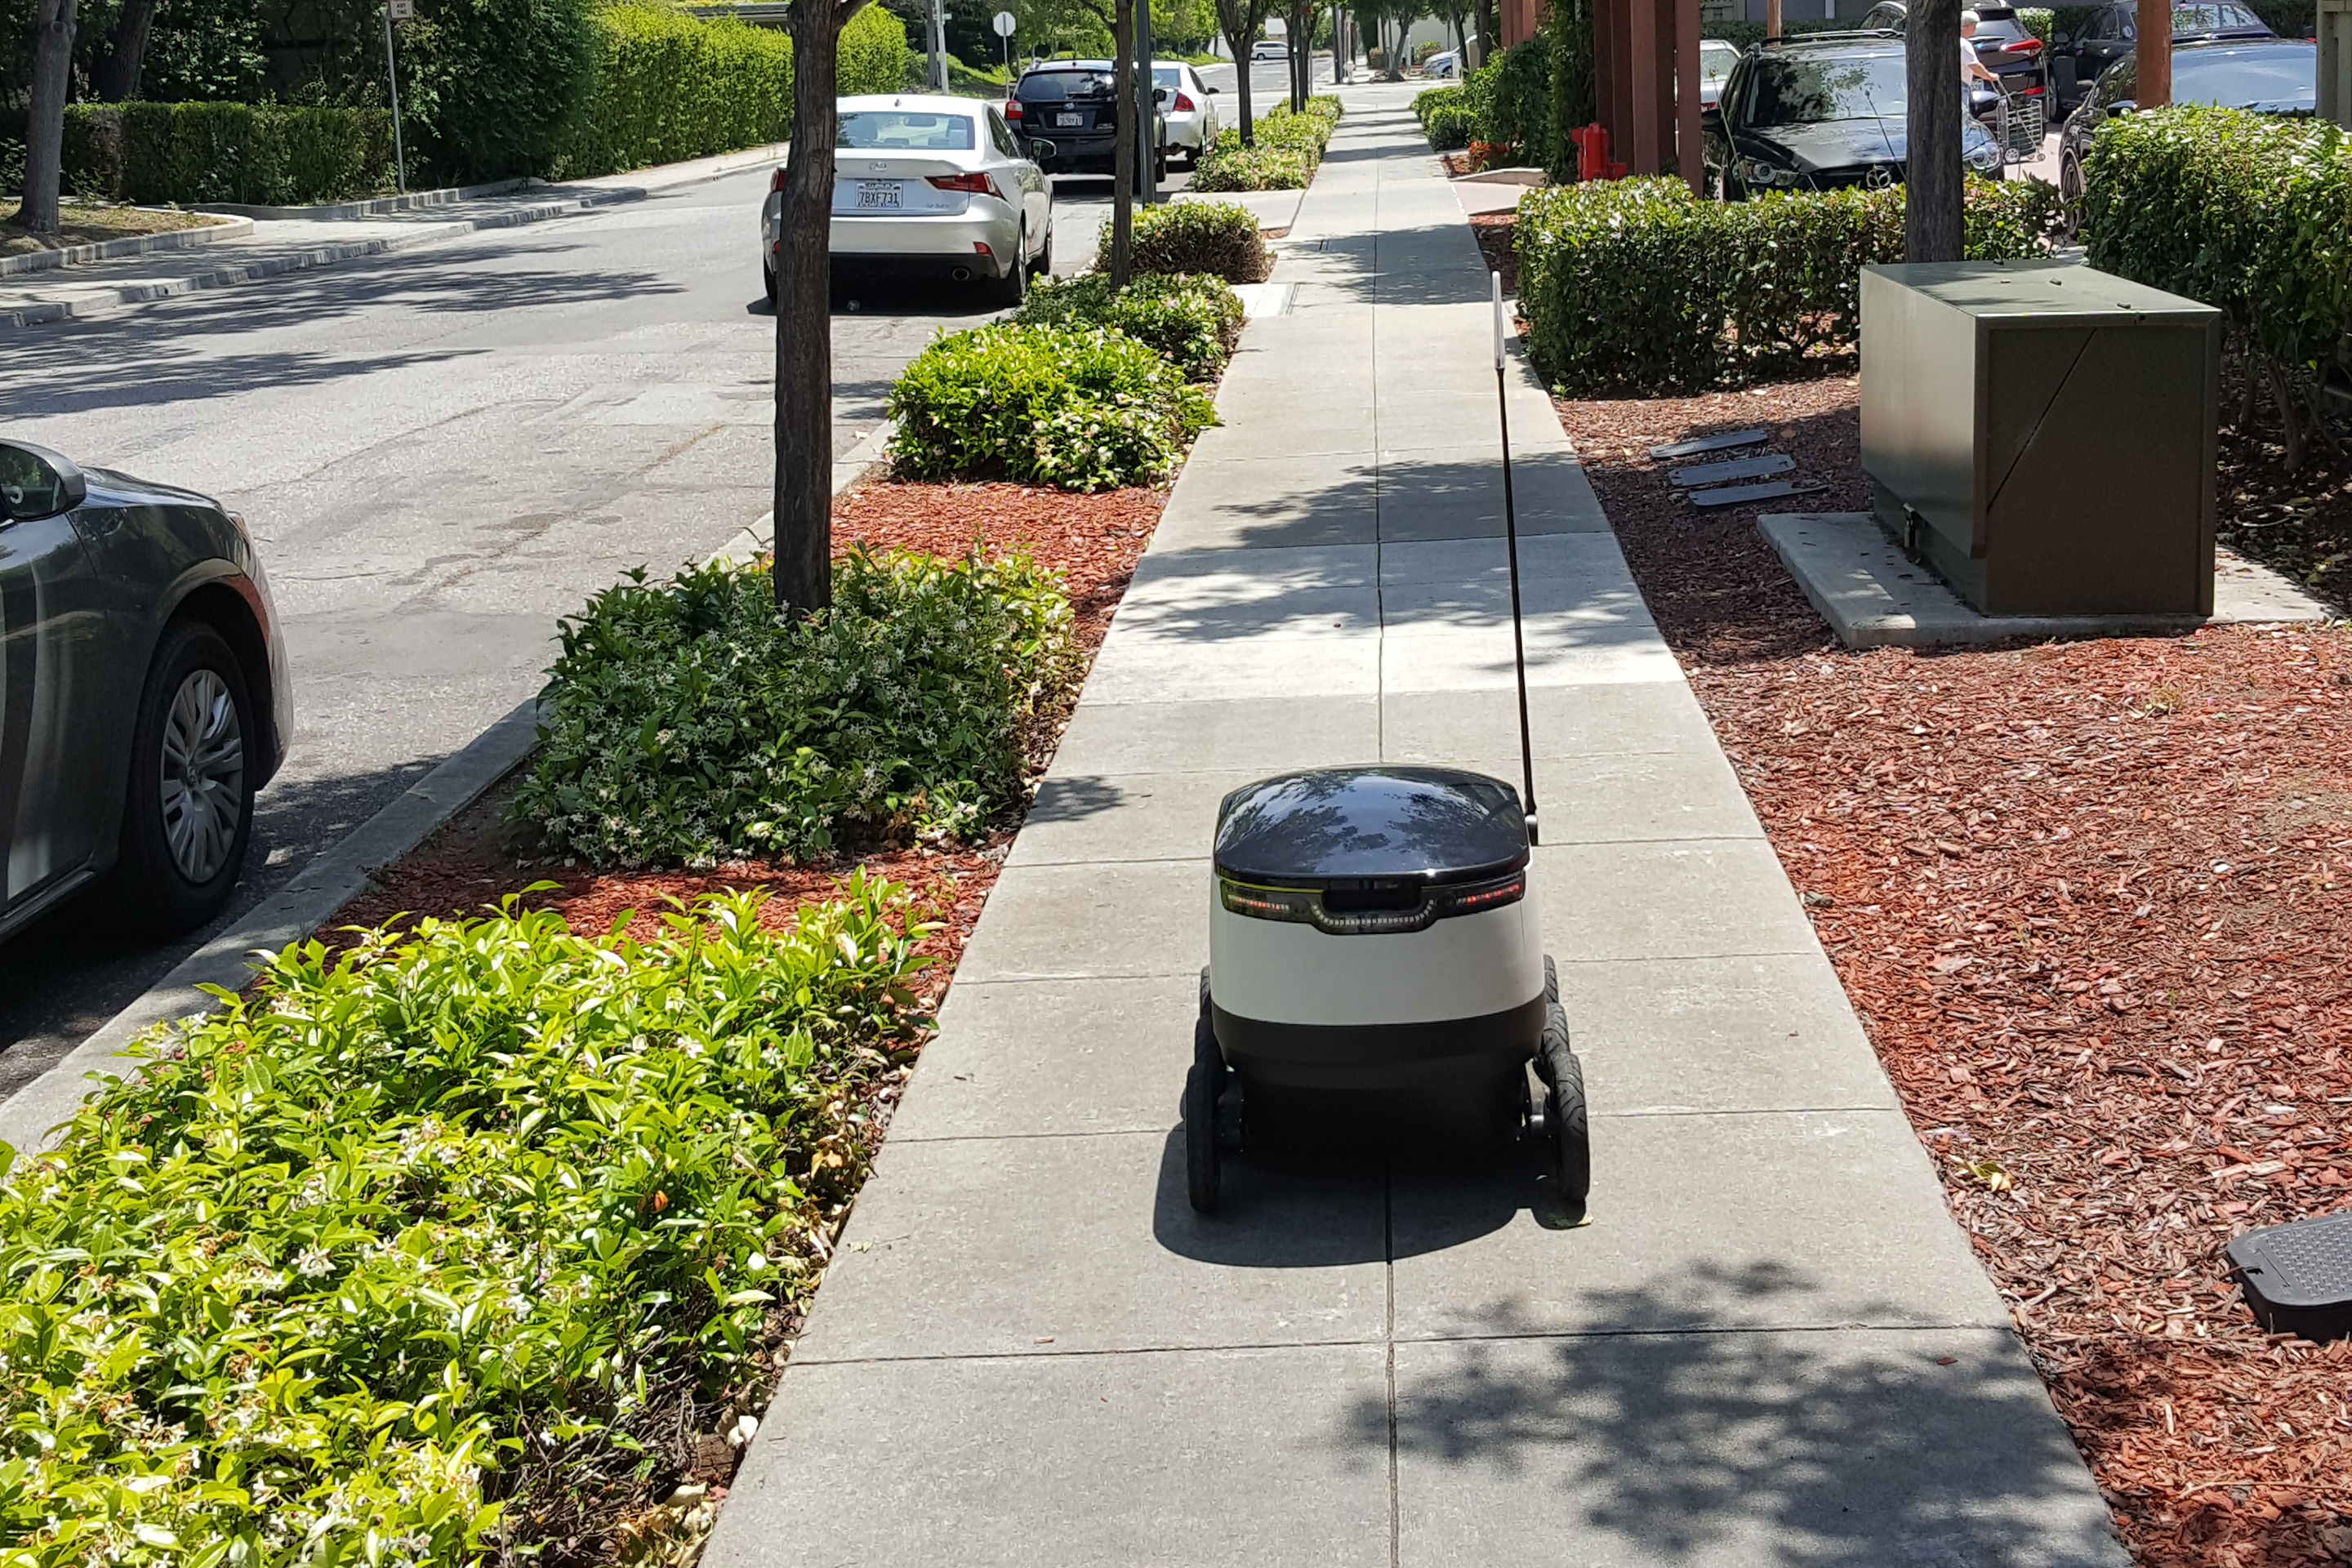 DoorDash will begin using robots to deliver food this week